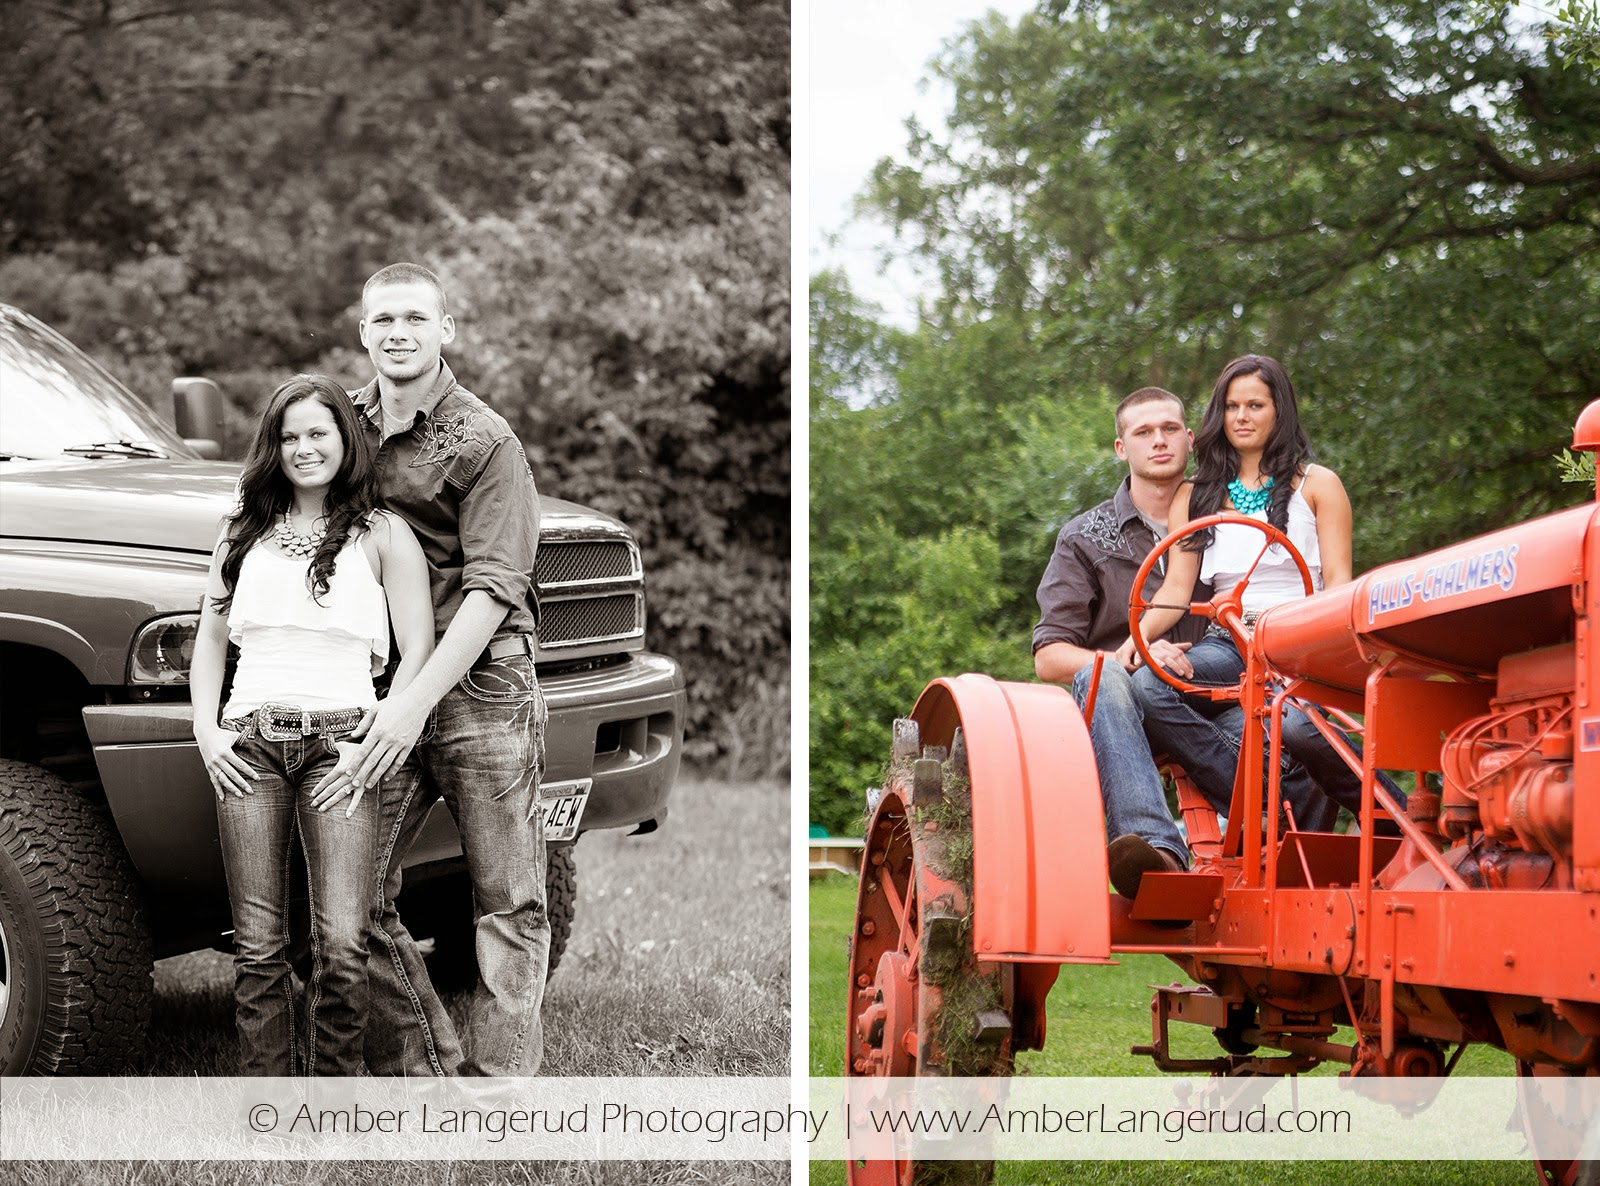 Outdoor Country Engagement Pictures | Detroit Lakes Area Photographer | Engagement Photos with Truck & Tractor